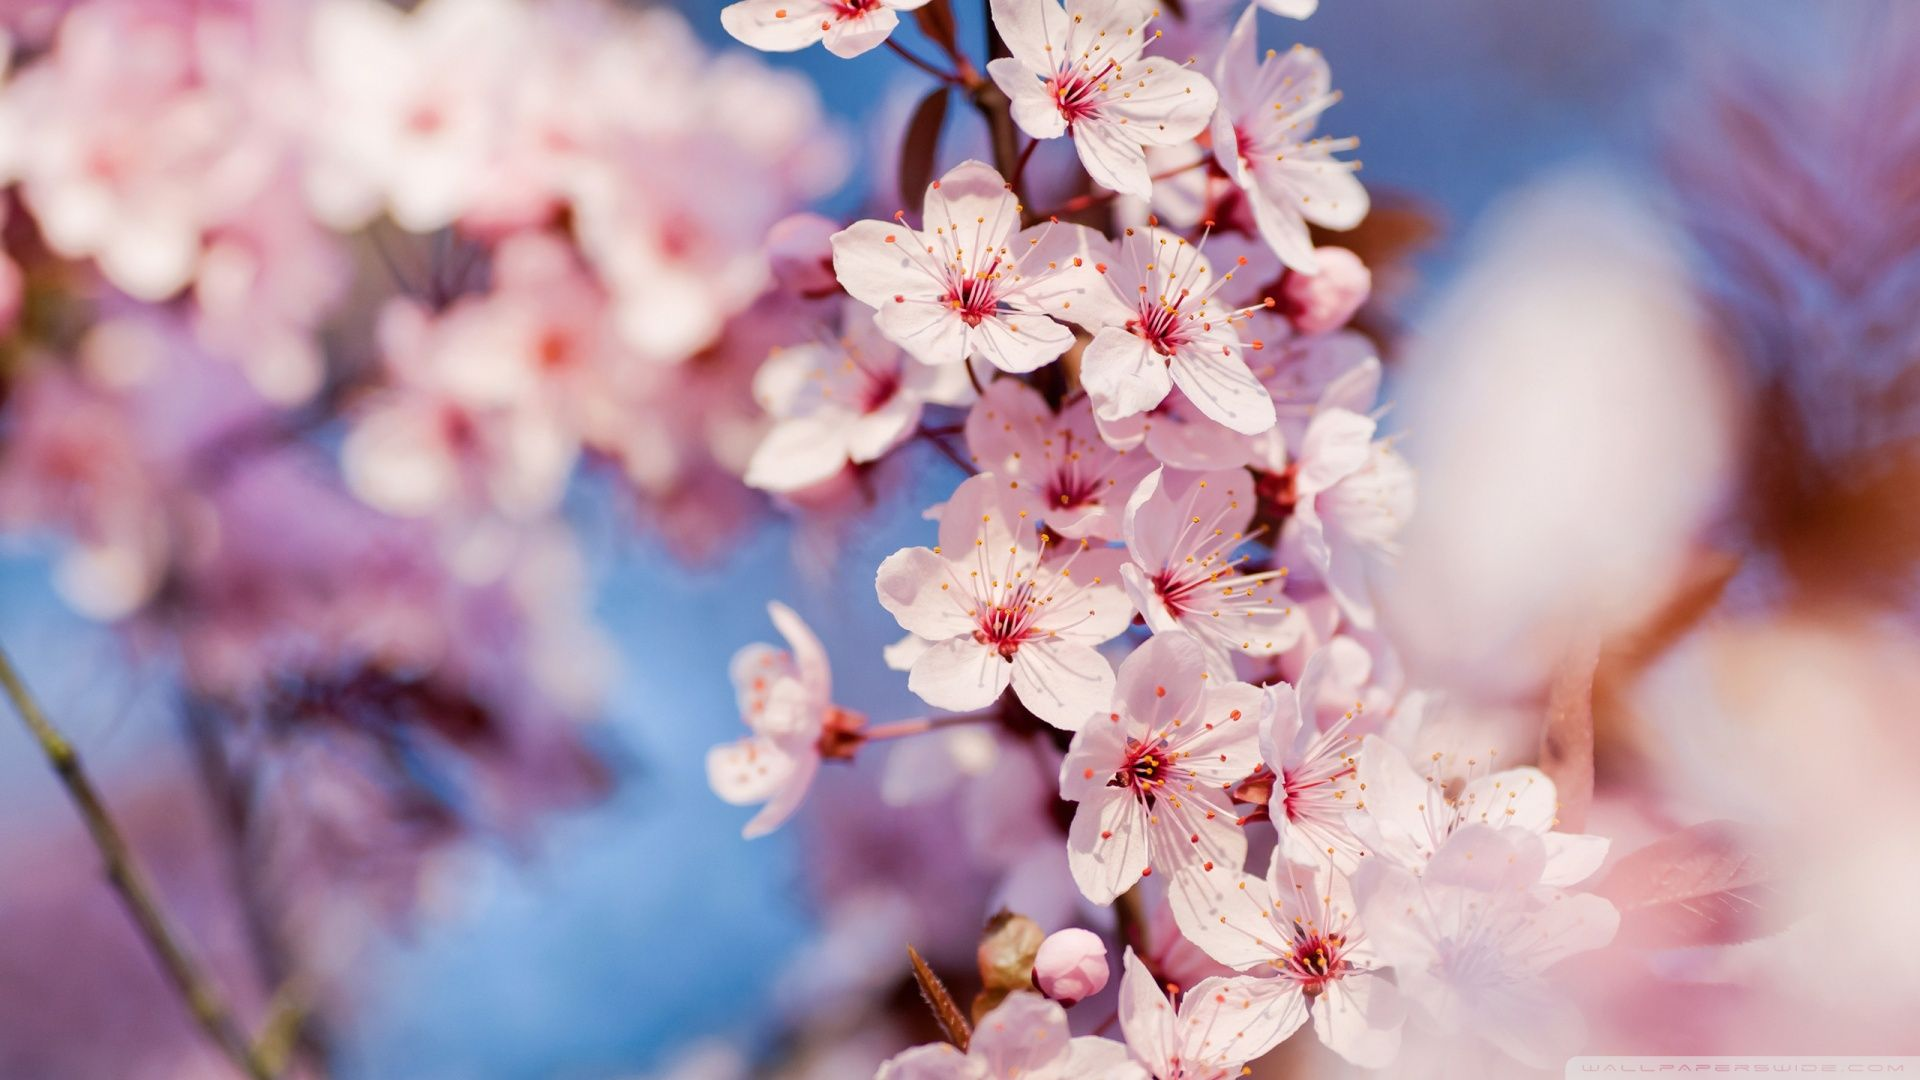 Cherry Blossom Desktop Wallpapers Top Free Cherry Blossom Desktop Backgrounds Wallpaperaccess